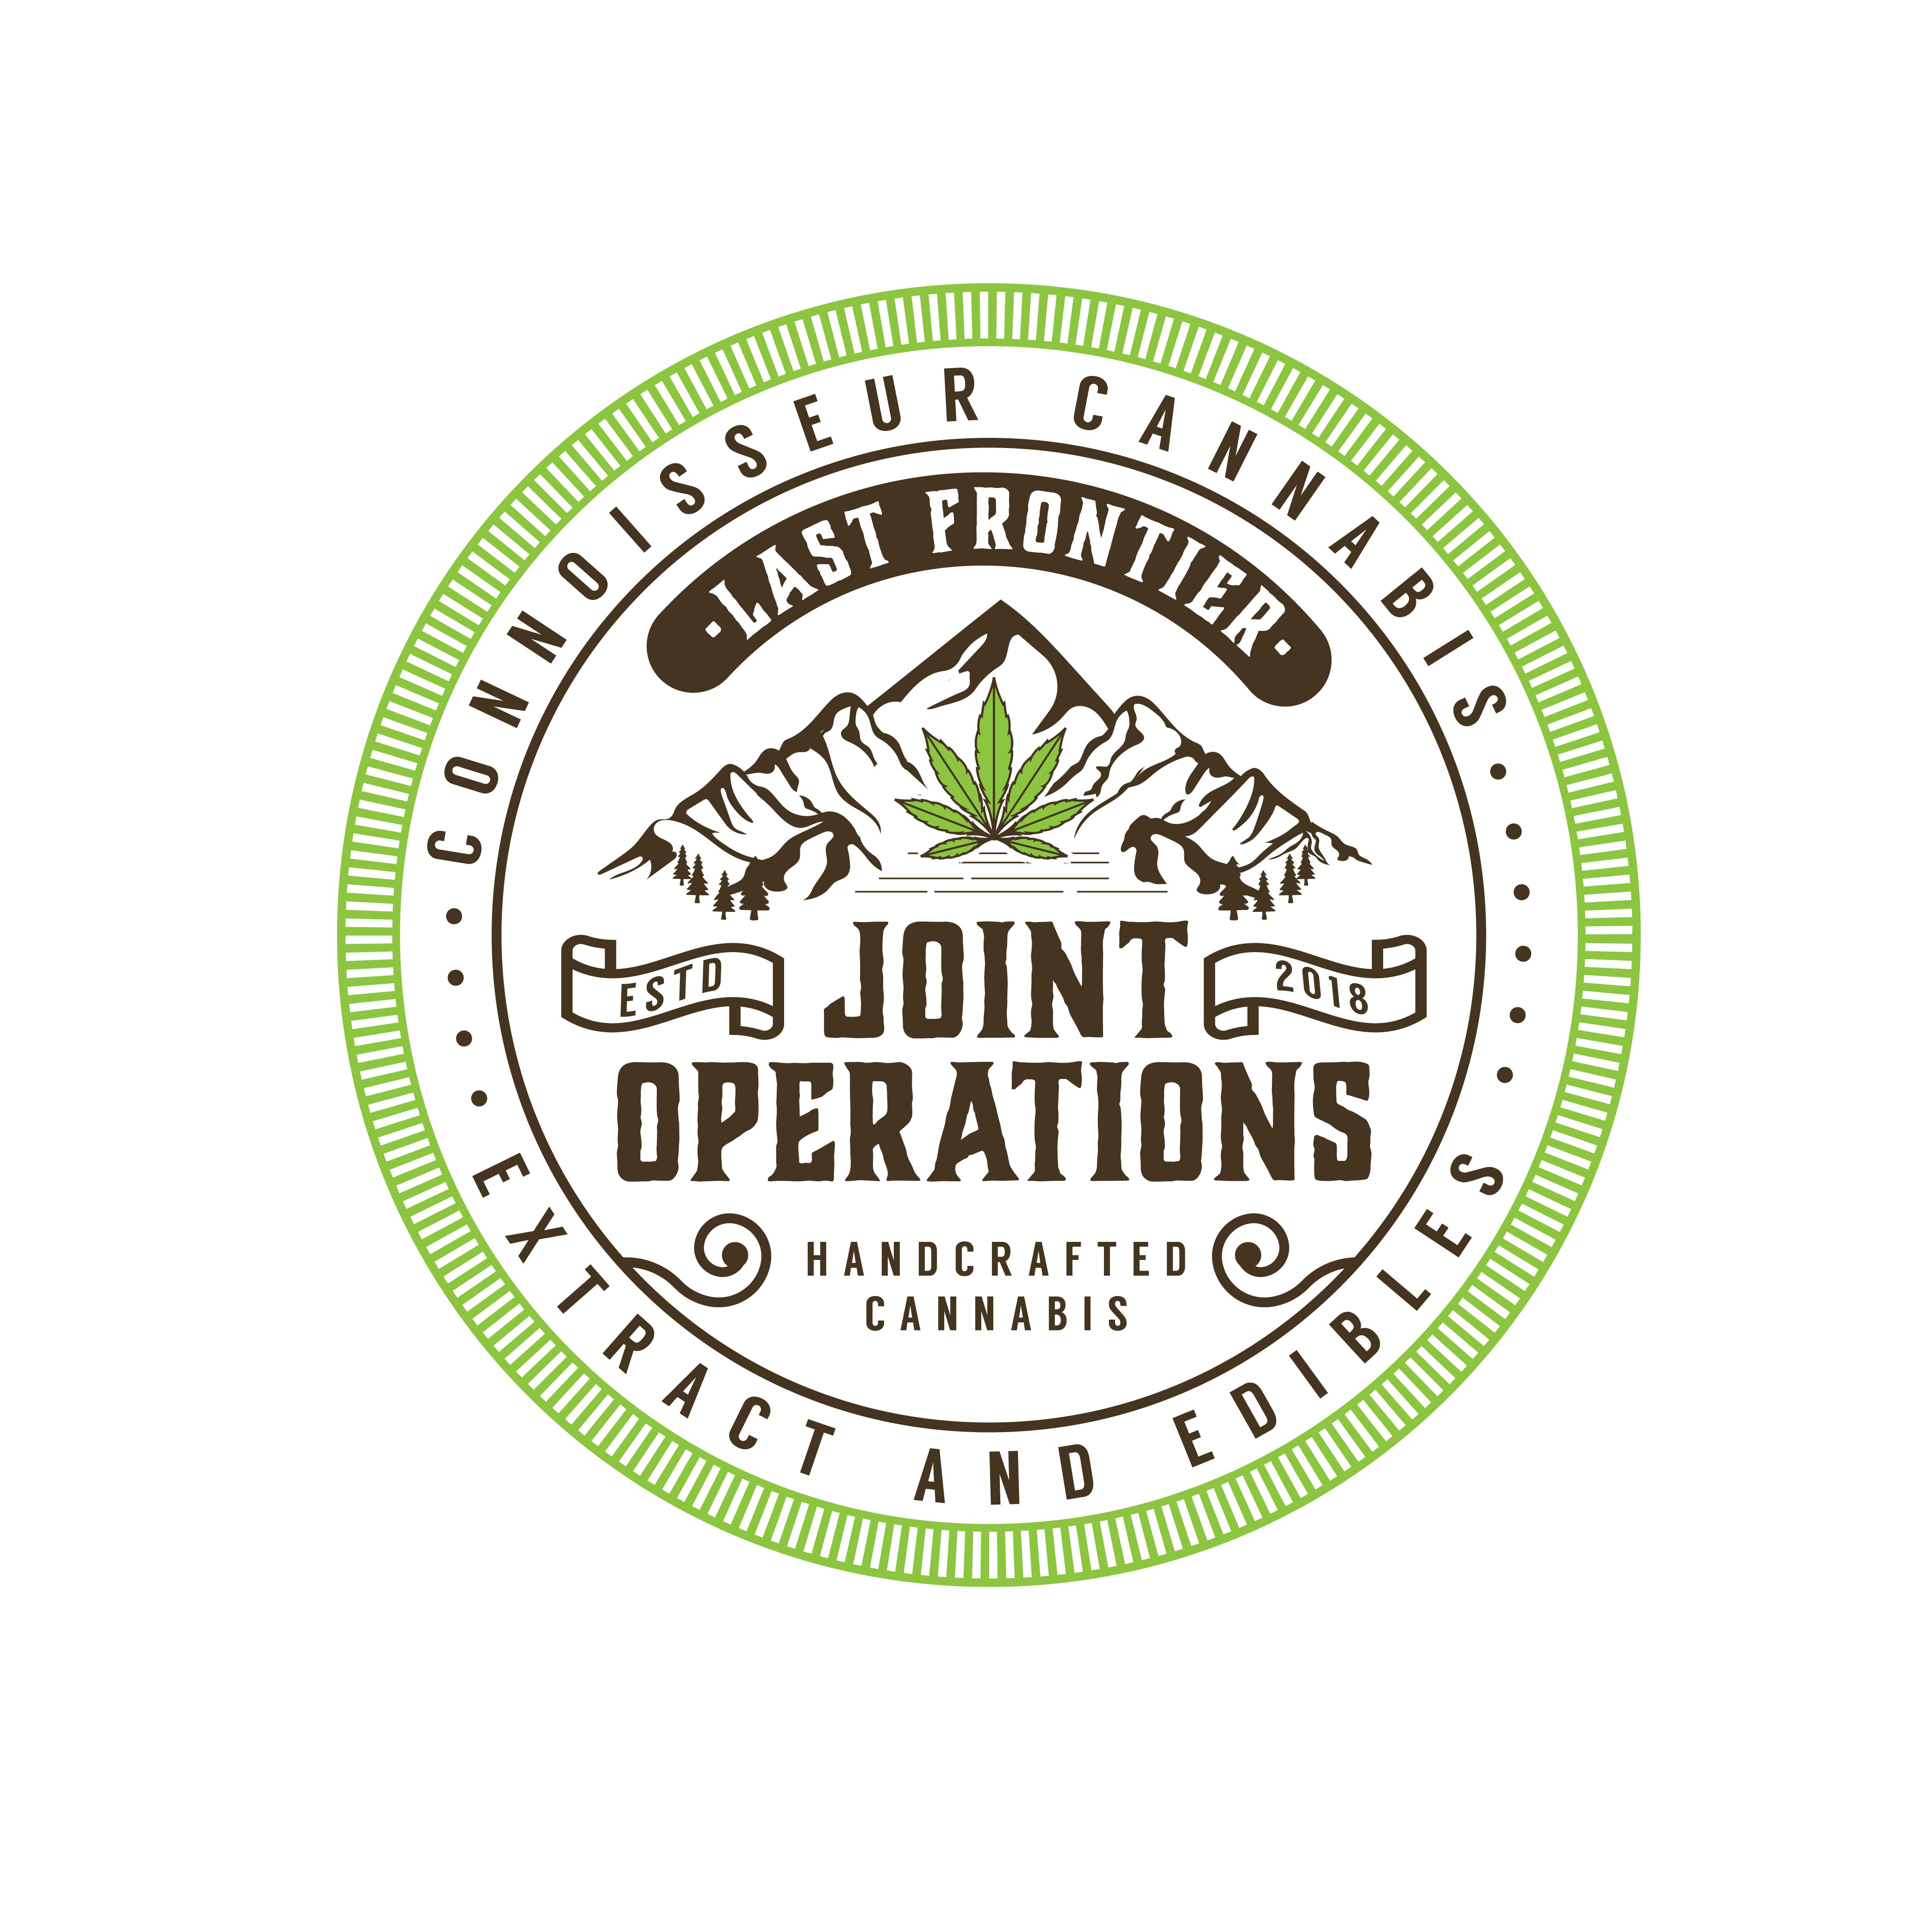 Cannabis Grower needs a Fun Professional product label that is unique to their industry & location